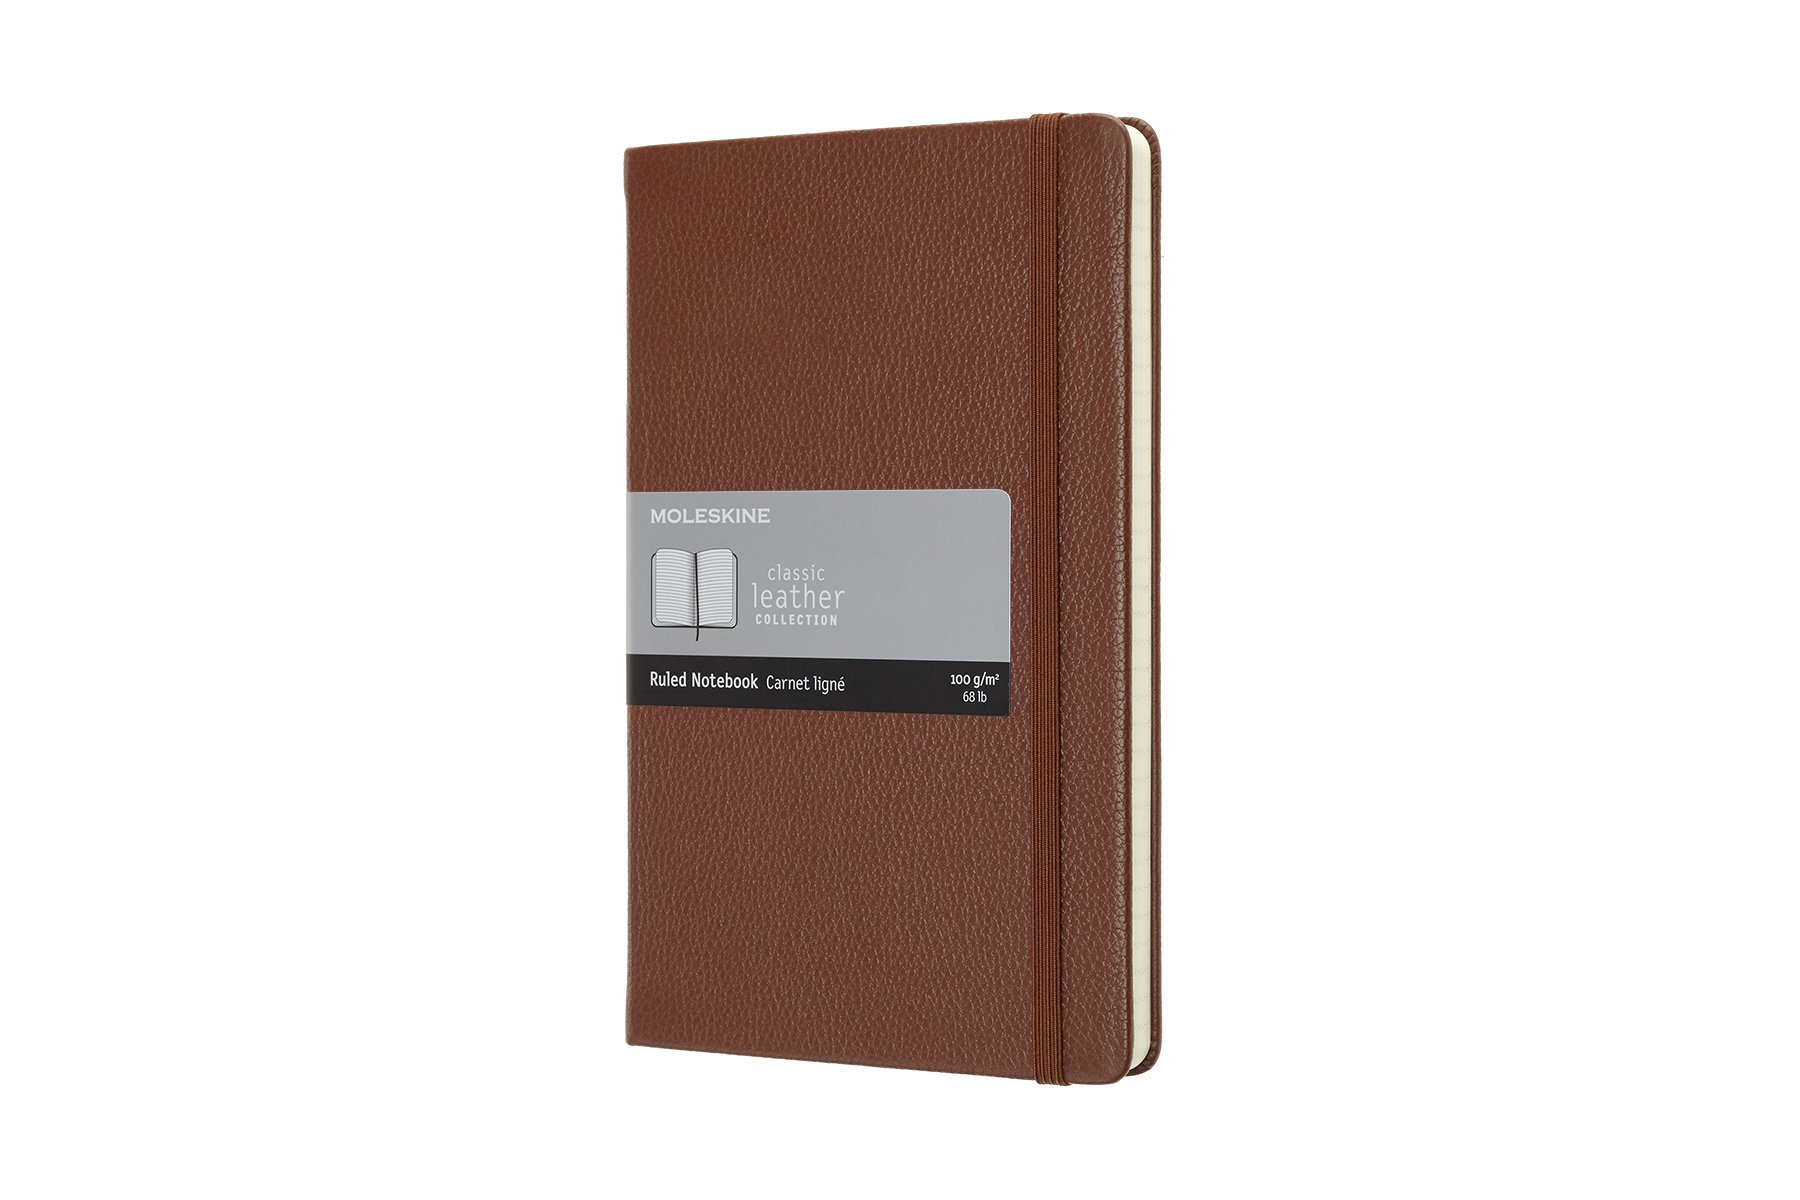 Moleskine Classic Hard Cover Leather Notebook, Ruled, (CJGS)